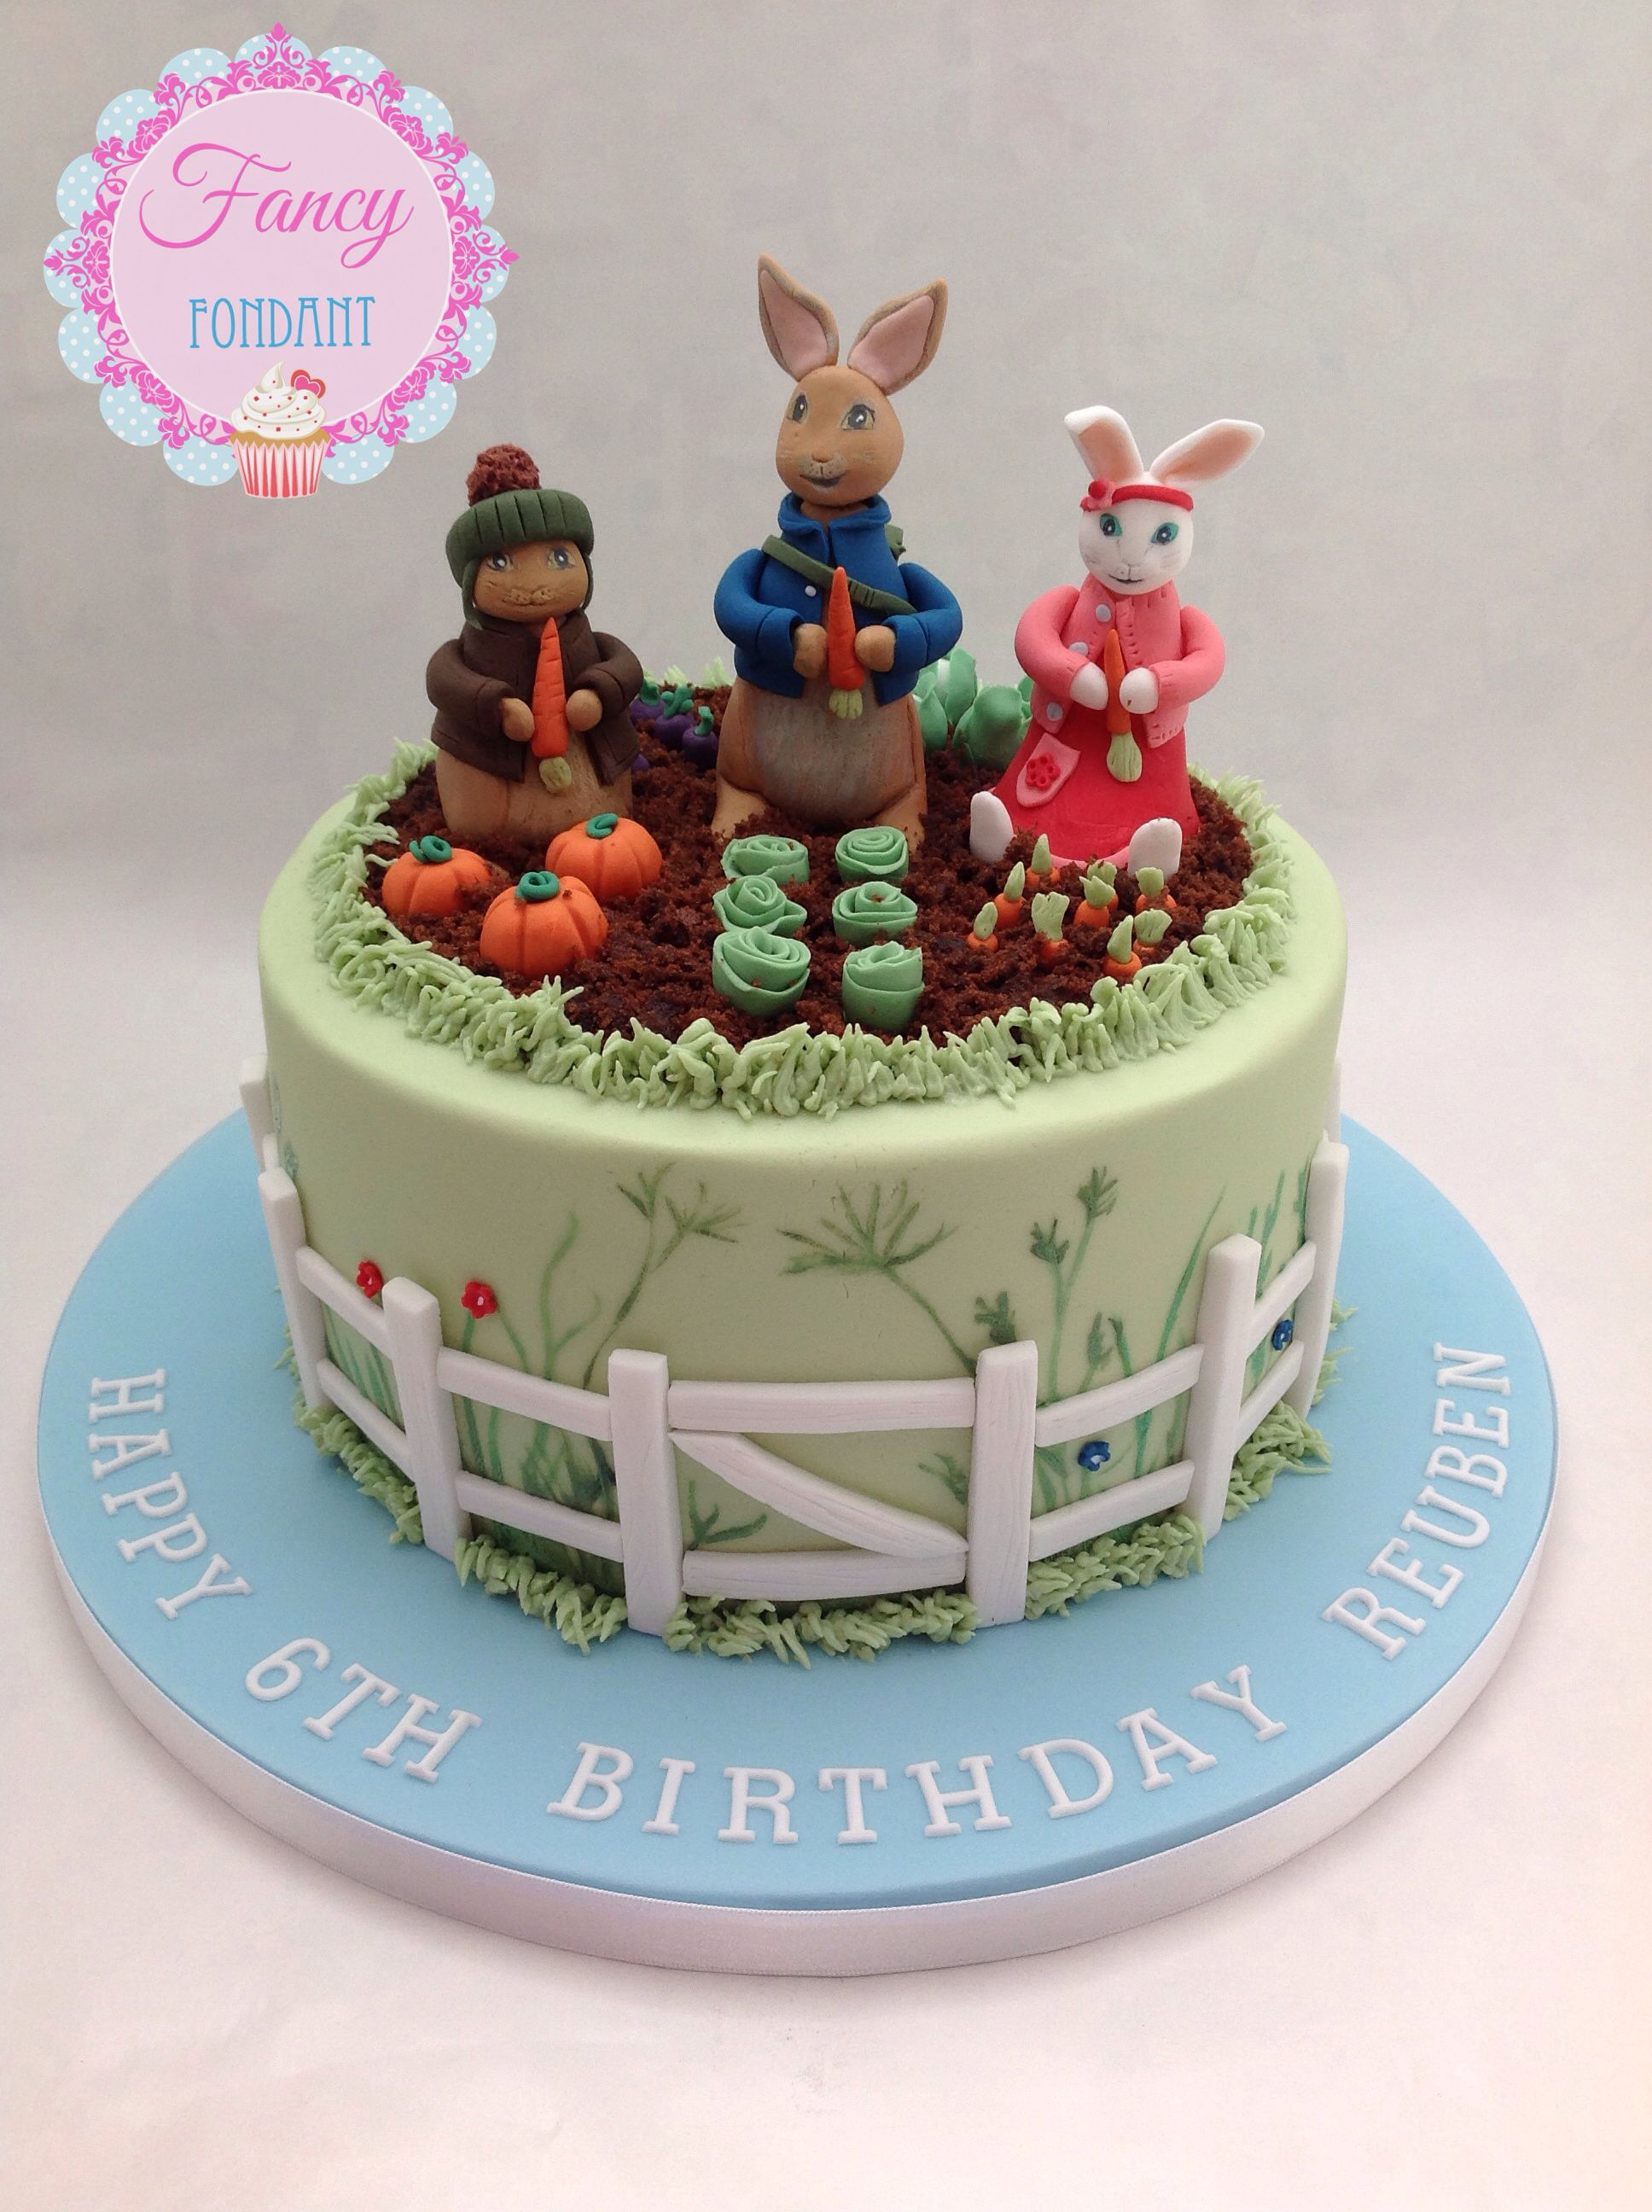 A Beatrix Potter Peter Rabbit Cake Modelled From The Tv Series By